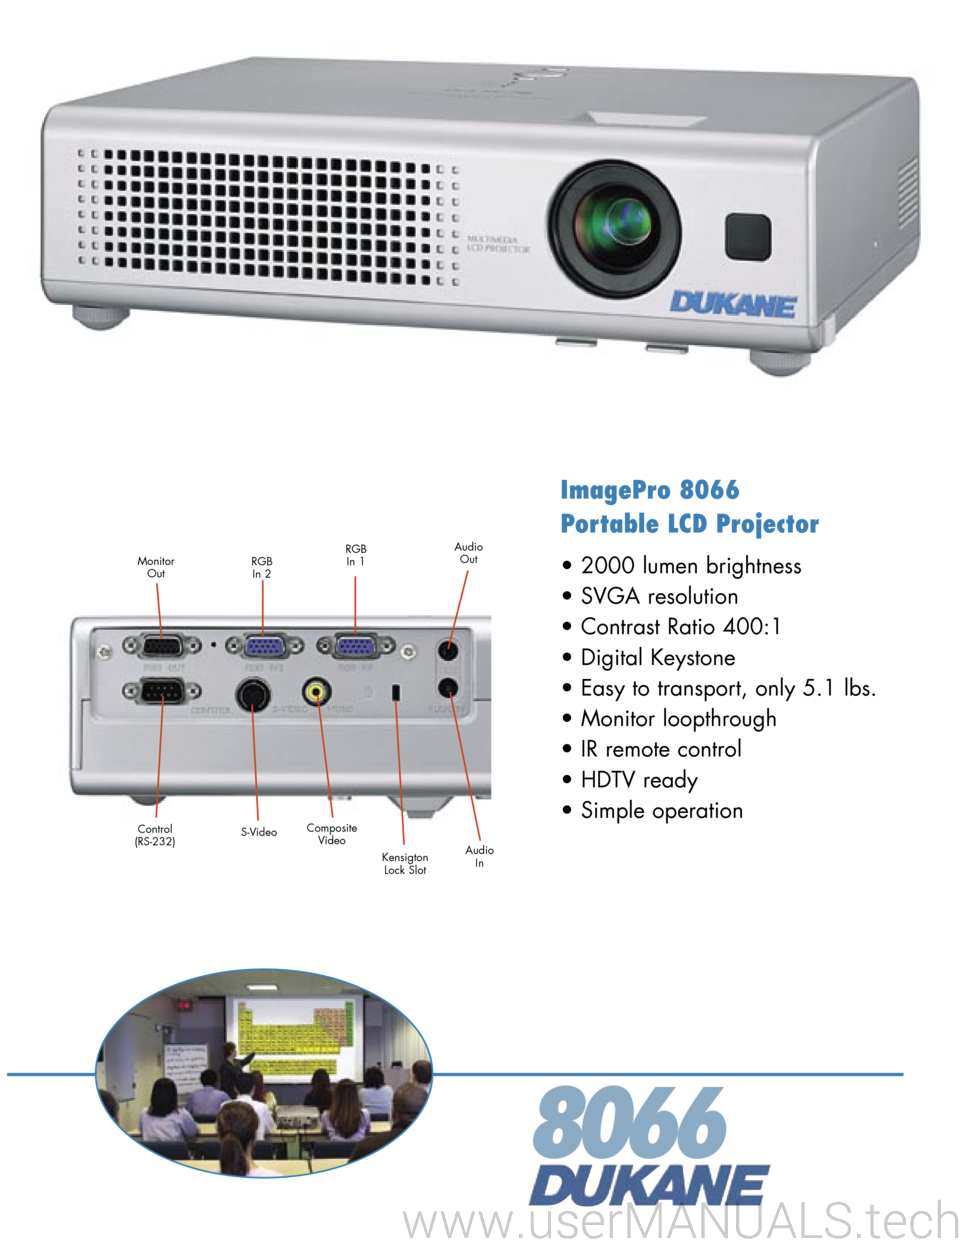 Dukane Imagepro 8066 Portable Lcd Projector Specifications Contrast Control For Lcds